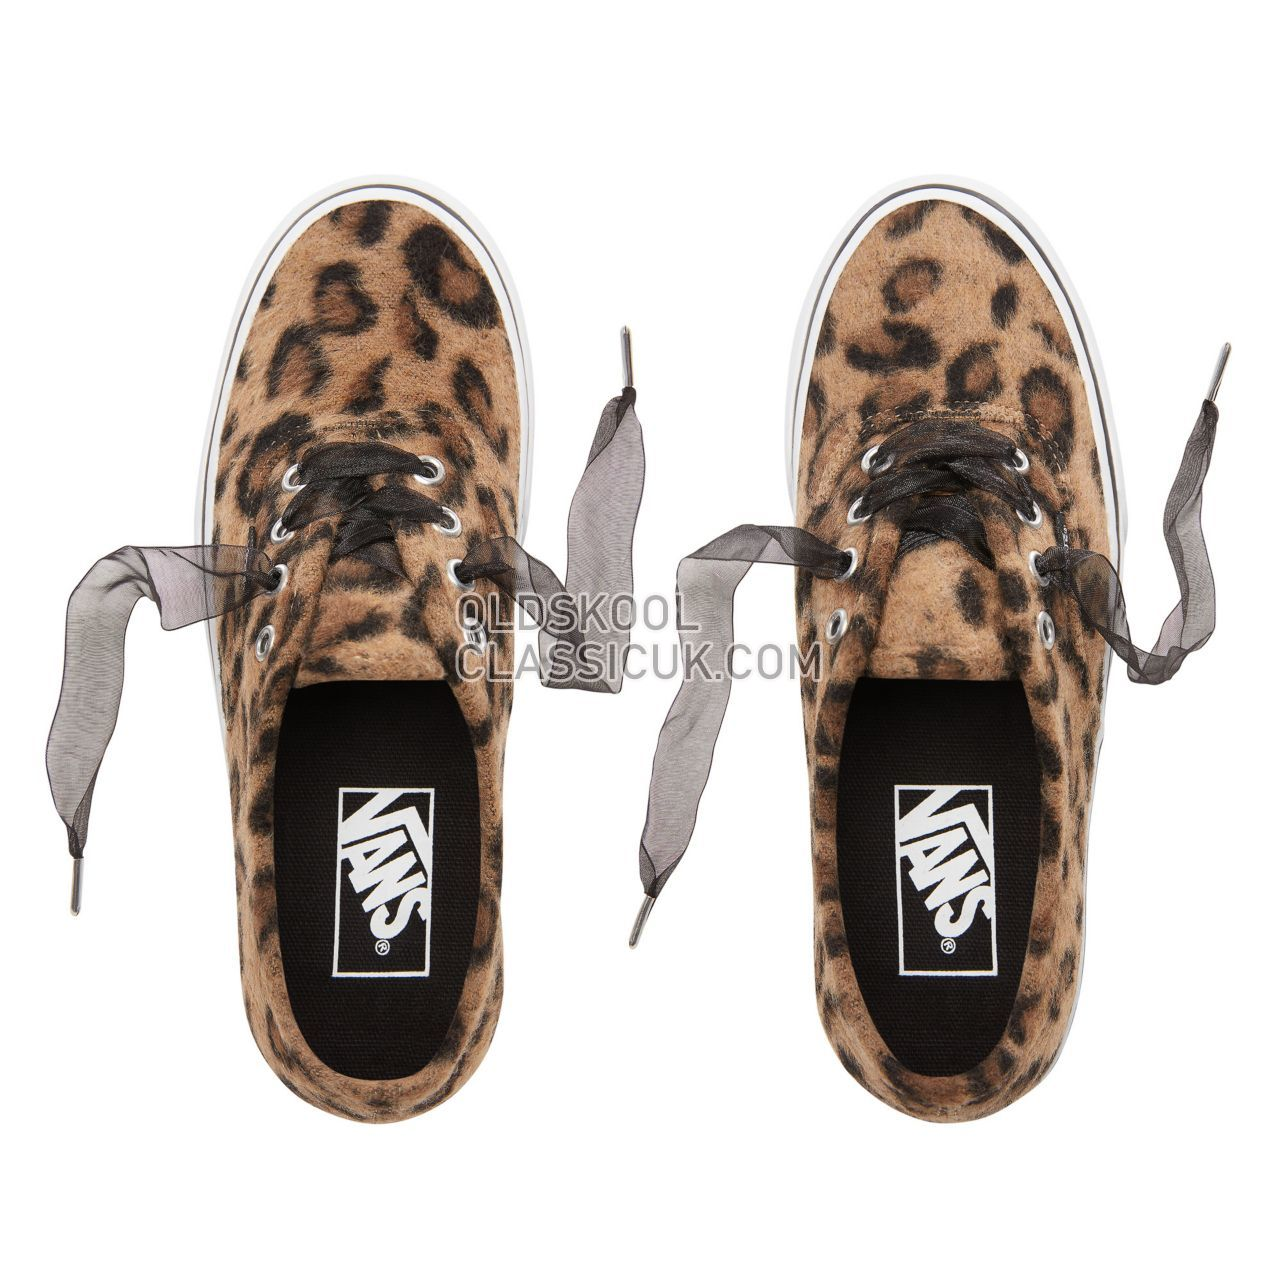 Vans Fuzzy Authentic Platform 2.0 Sneakers Womens (Fuzzy) Leopard/True White VN0A3AV8RSO Shoes